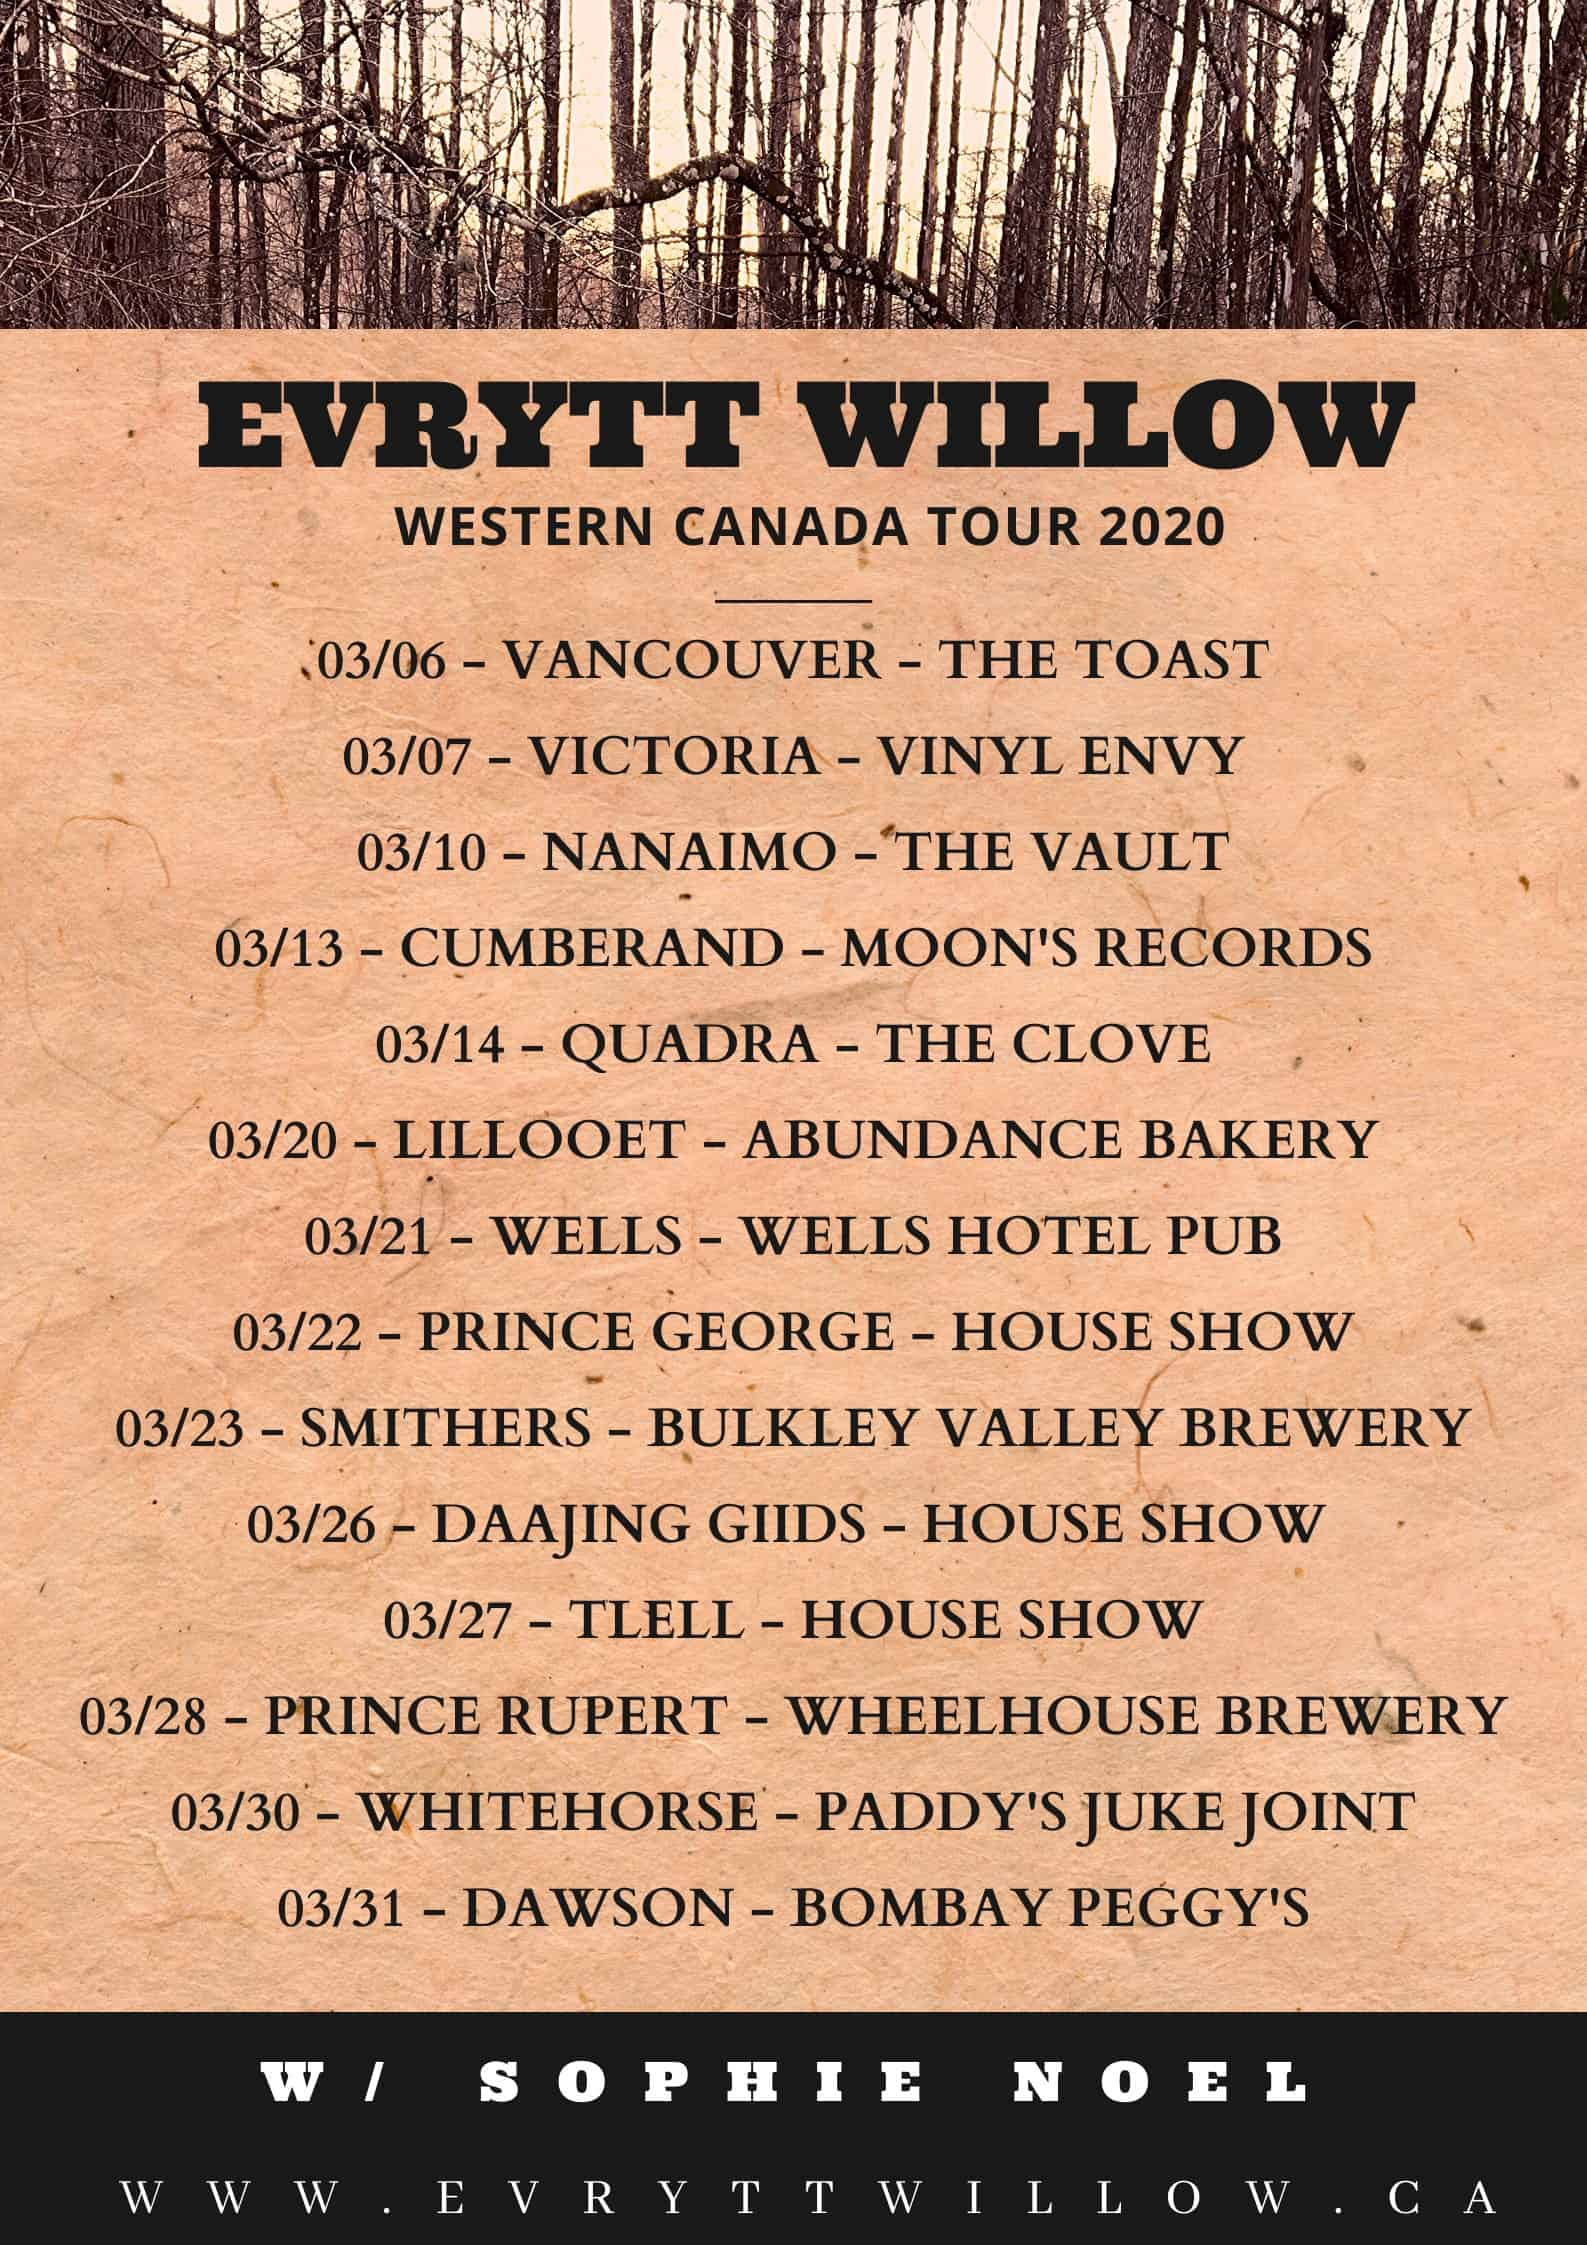 Evrytt Willow Western Canada Tour